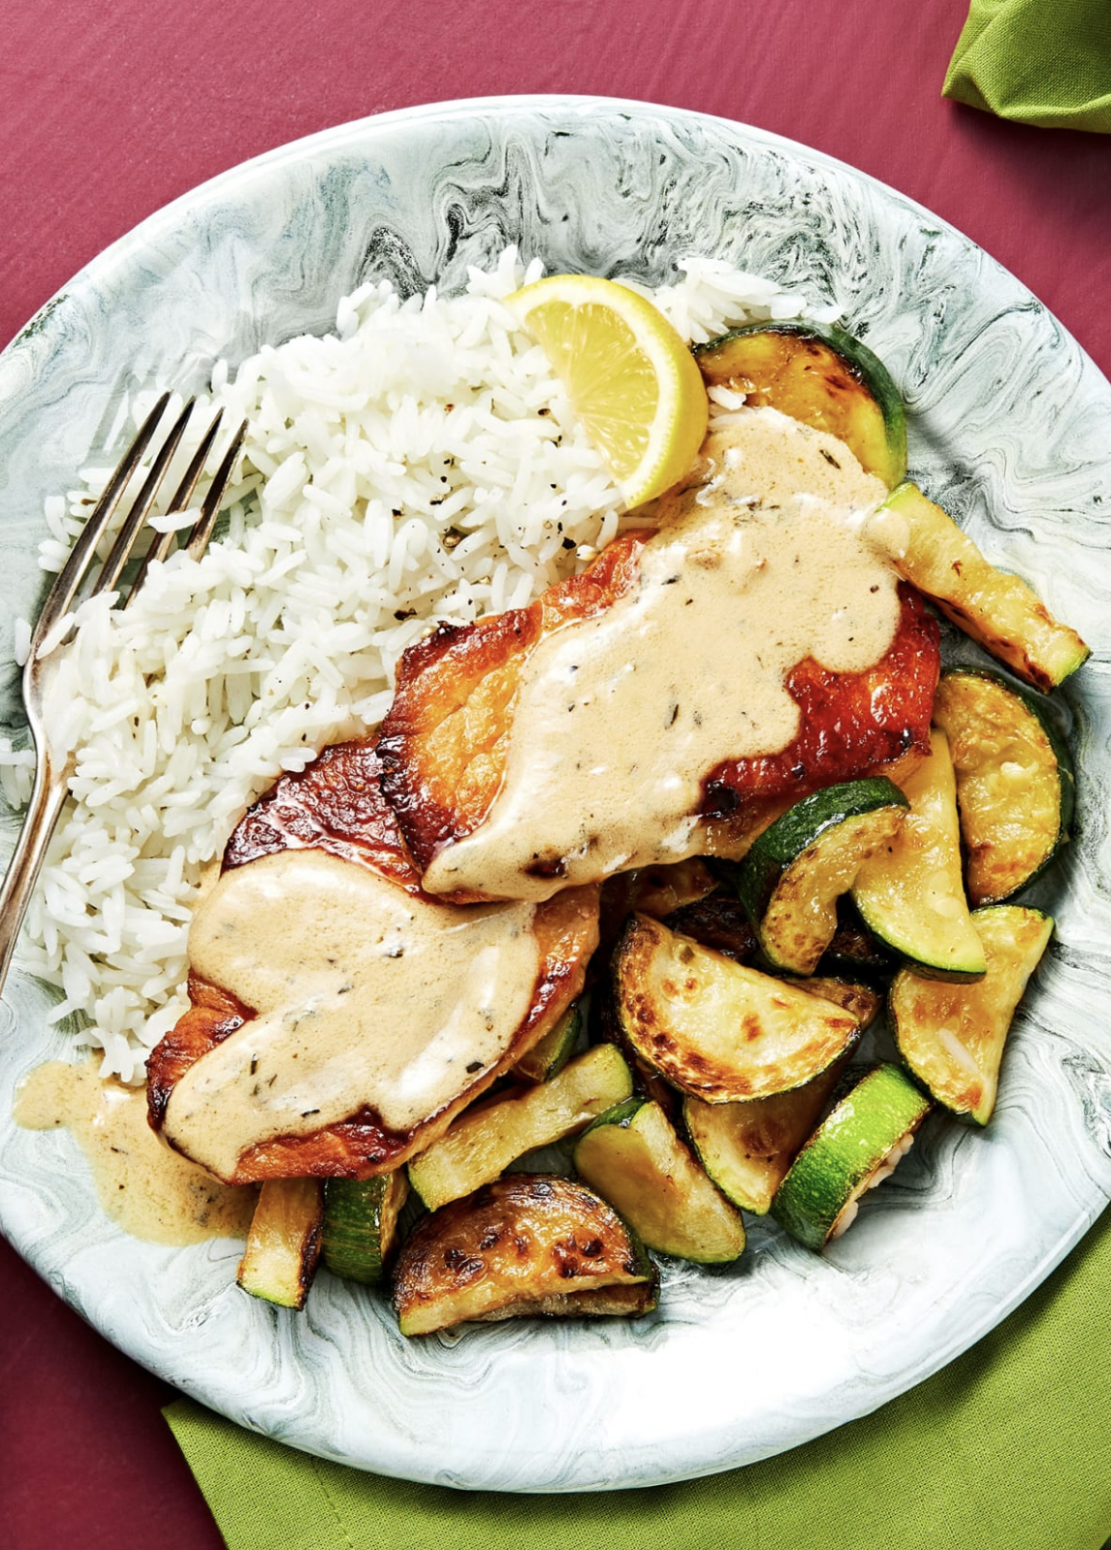 Lemon-Thyme Pork with Roasted Zucchini and Garlic Herb Rice - Pork Recipes Quick